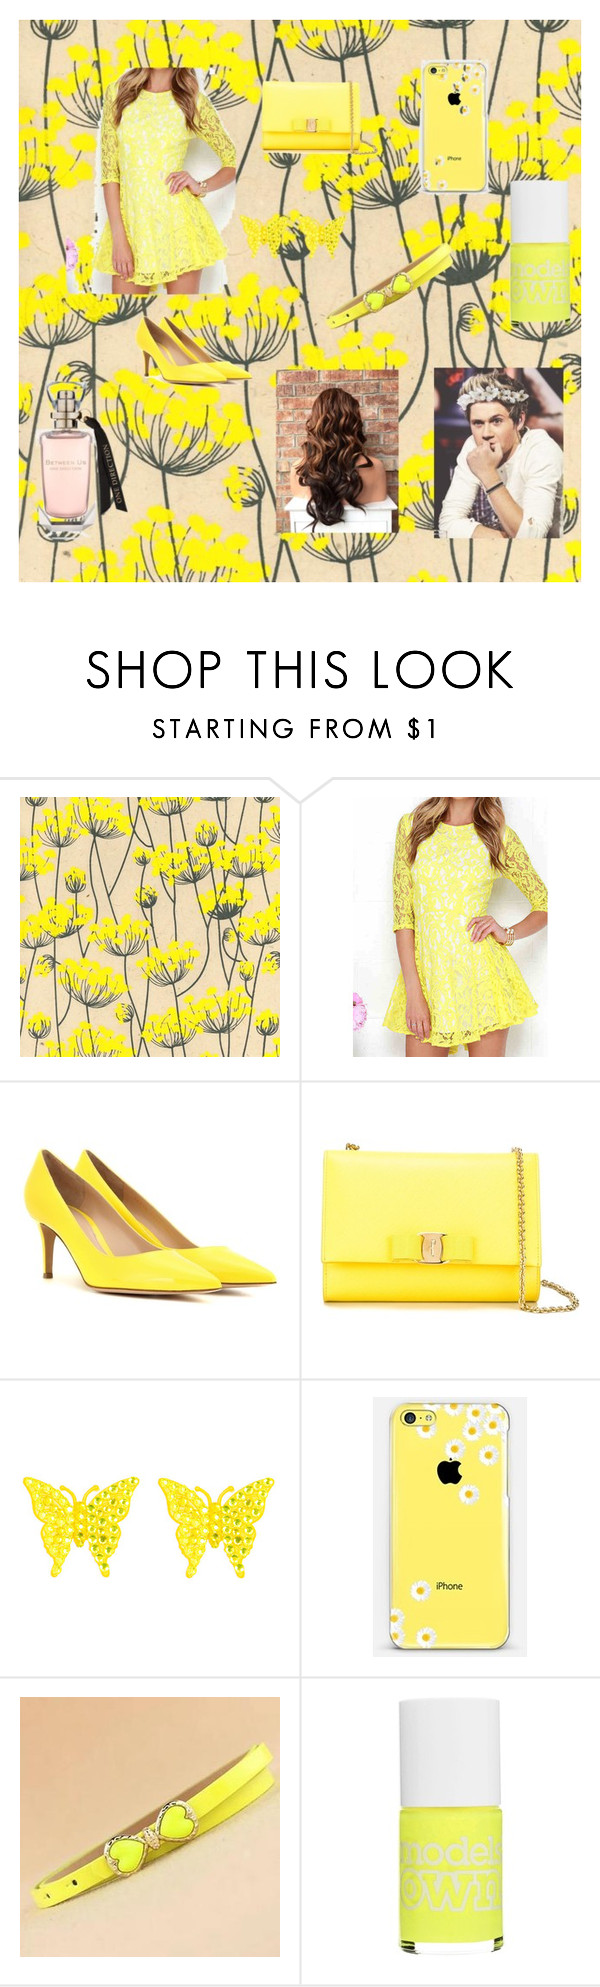 """""""Formal Yellow"""" by alexhoran0720 on Polyvore featuring WithChic, Gianvito Rossi, Salvatore Ferragamo, Tarina Tarantino, Casetify, Charm n Style, Models Own, women's clothing, women and female"""